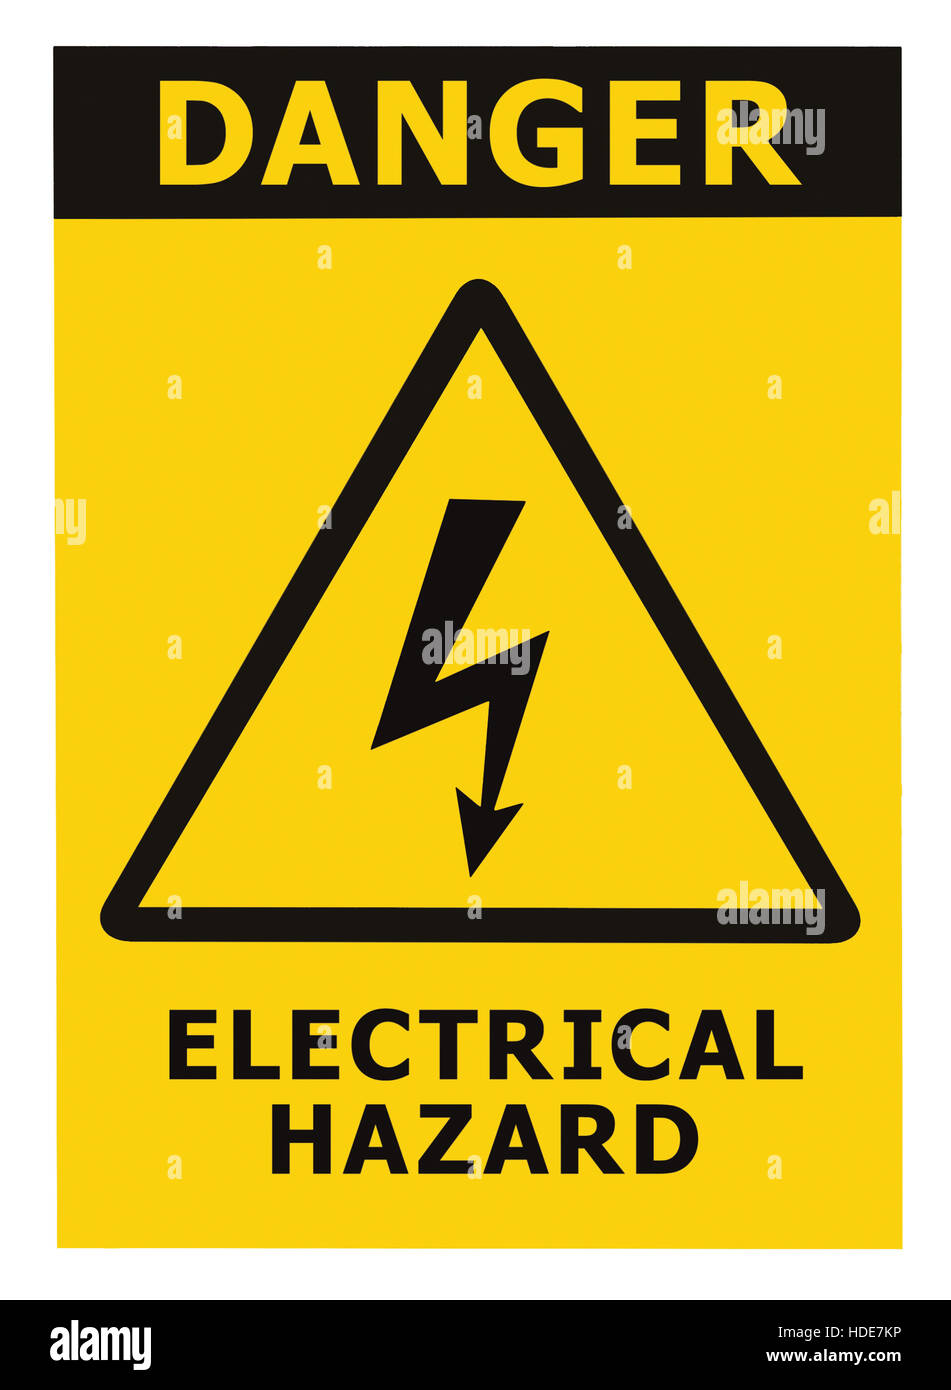 Electrical Signal Stock Photos Images Alamy Cubicle Wiring Diagram Network Danger Hazard Text Yellow Triangle Sign Label Isolated Image